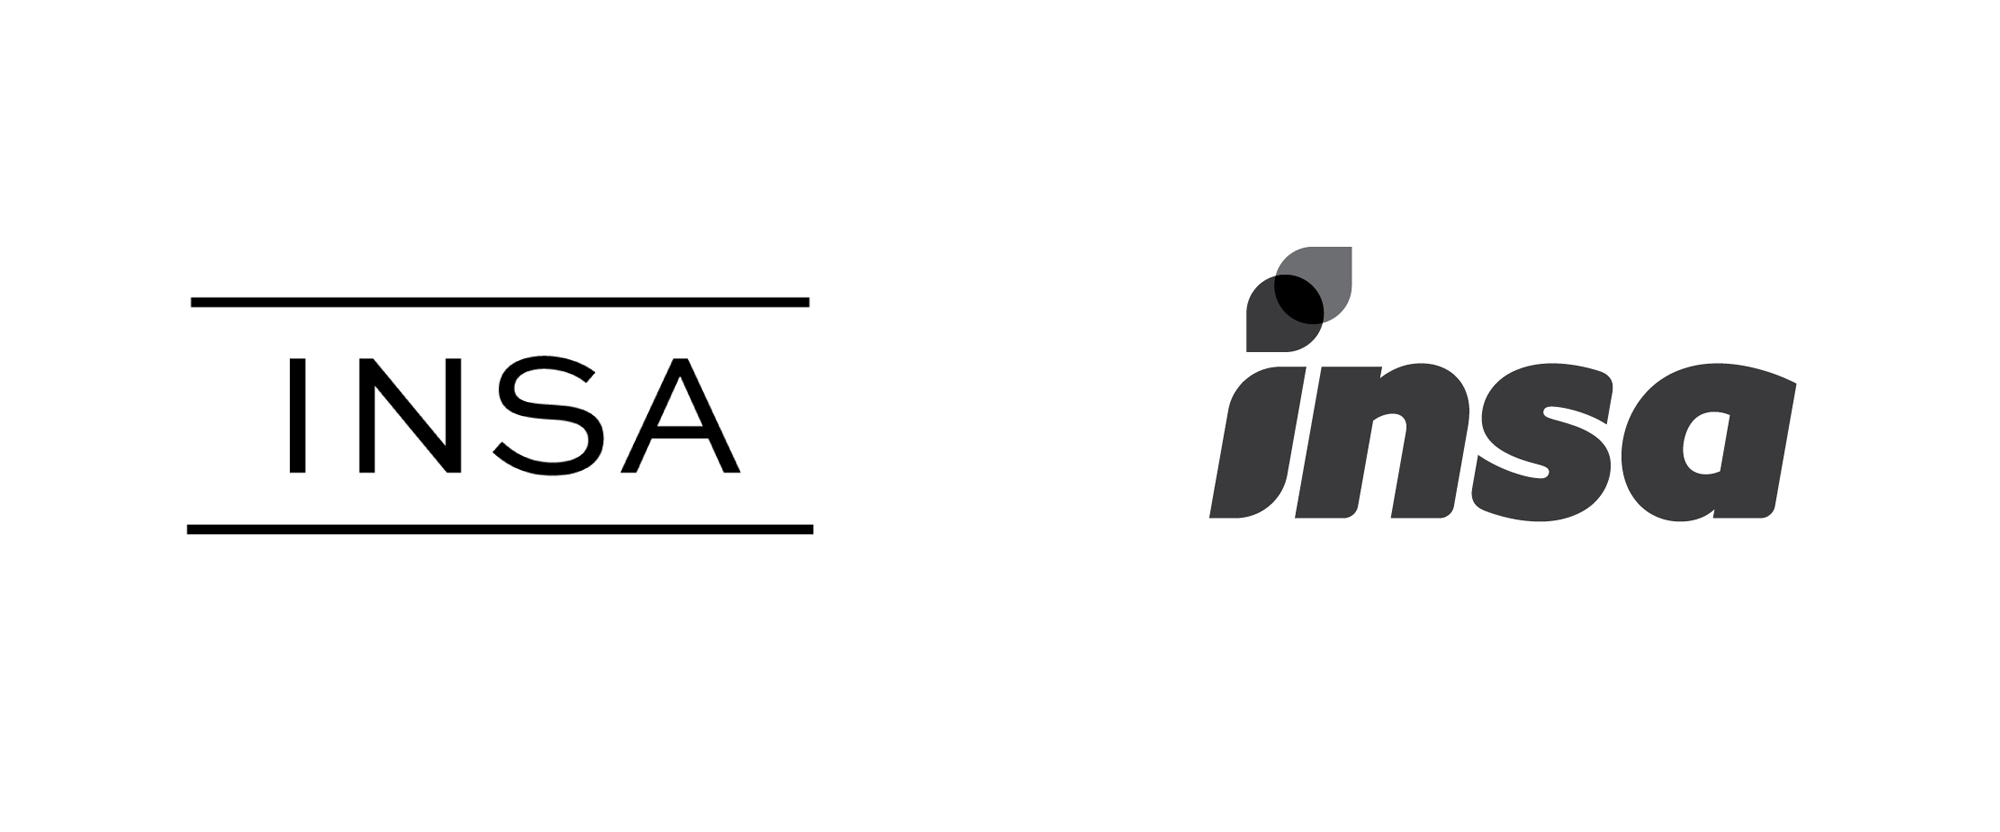 New Logo, Identity, and Packaging for INSA by Brigade